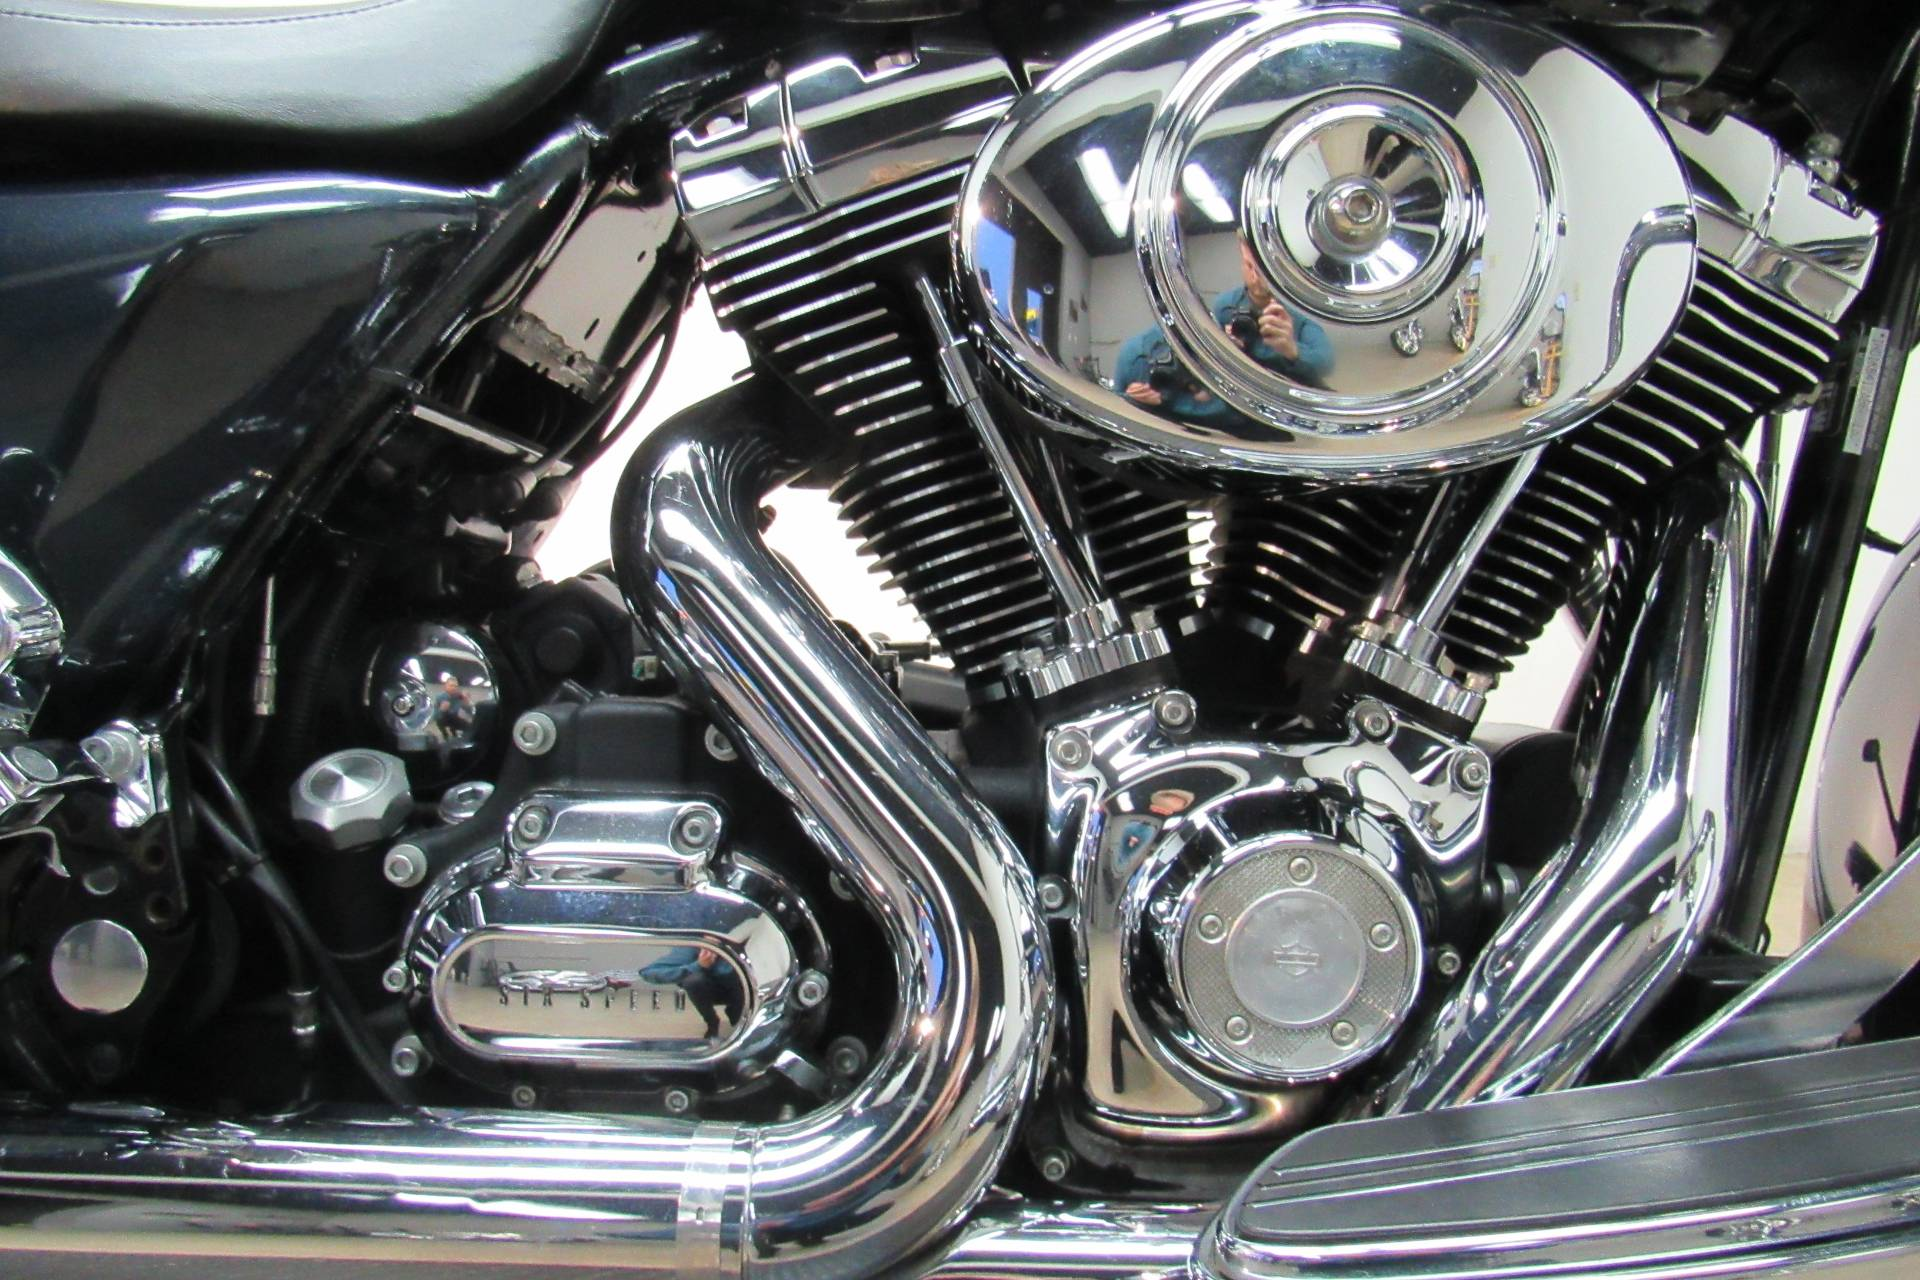 2010 Harley-Davidson Street Glide® in Temecula, California - Photo 10